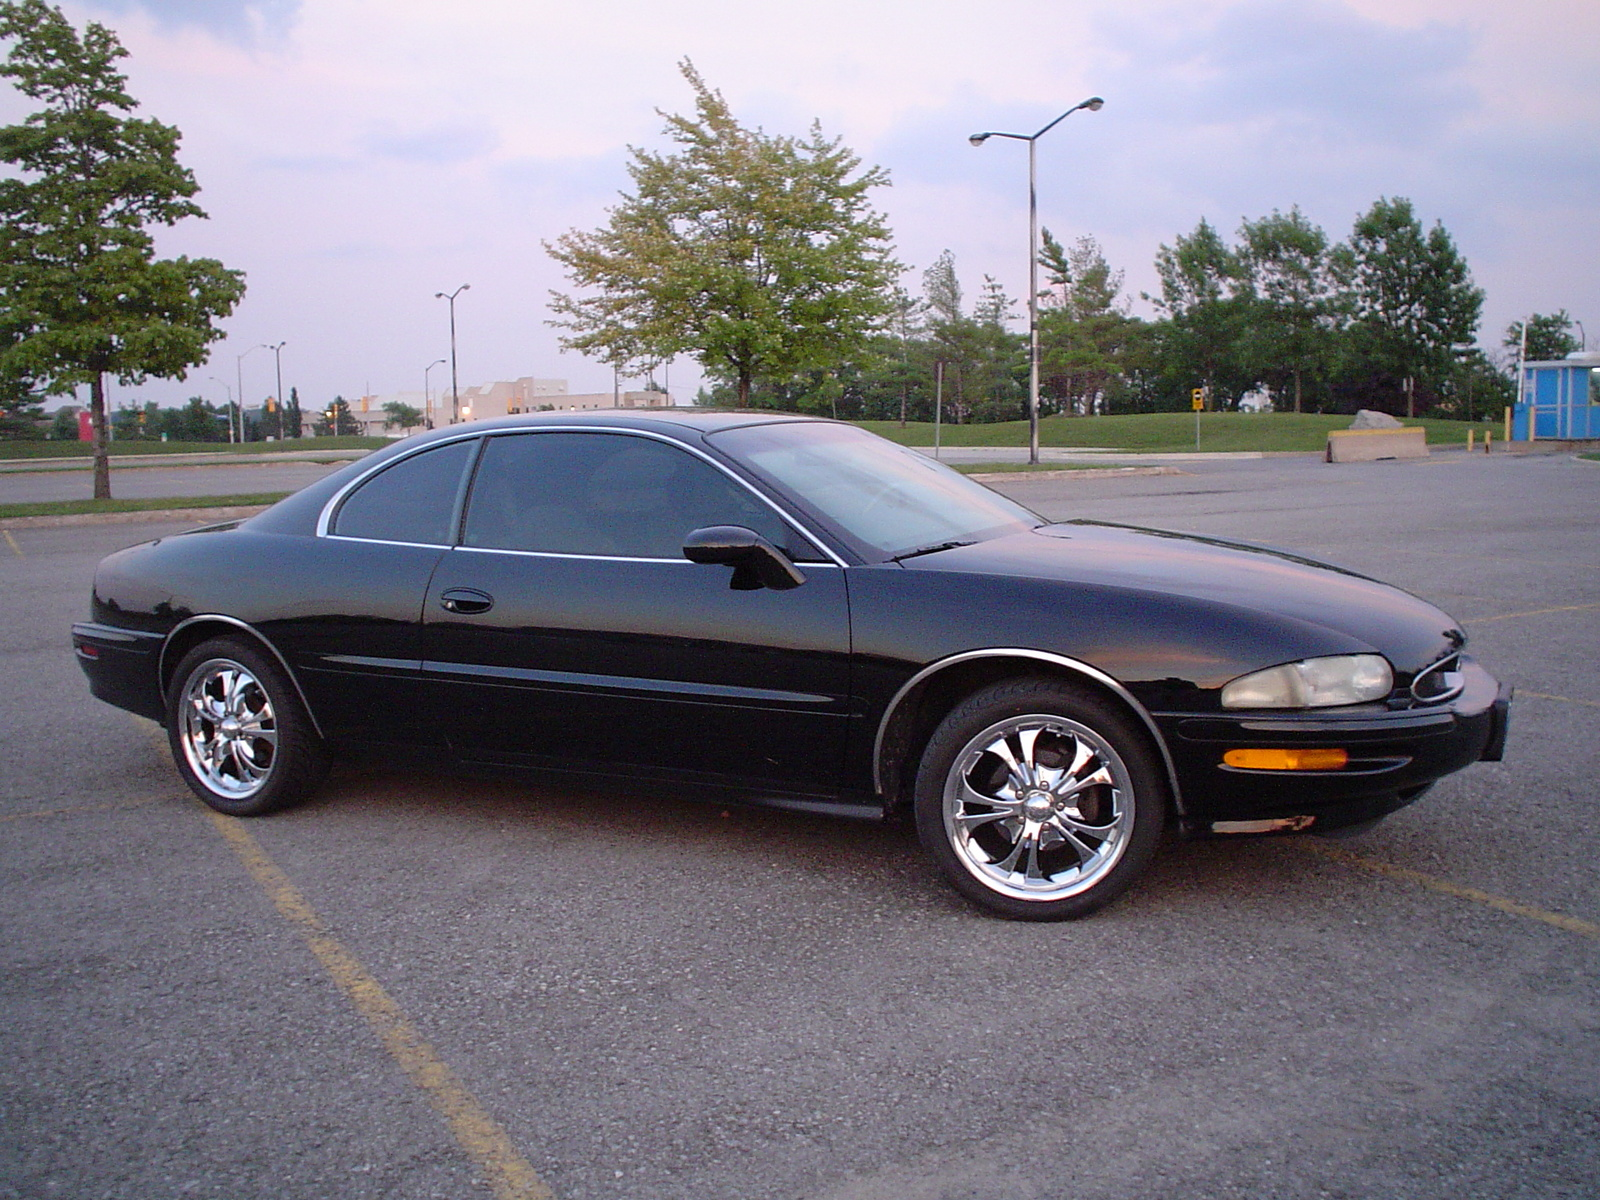 buick riviera 1995 pictures #7